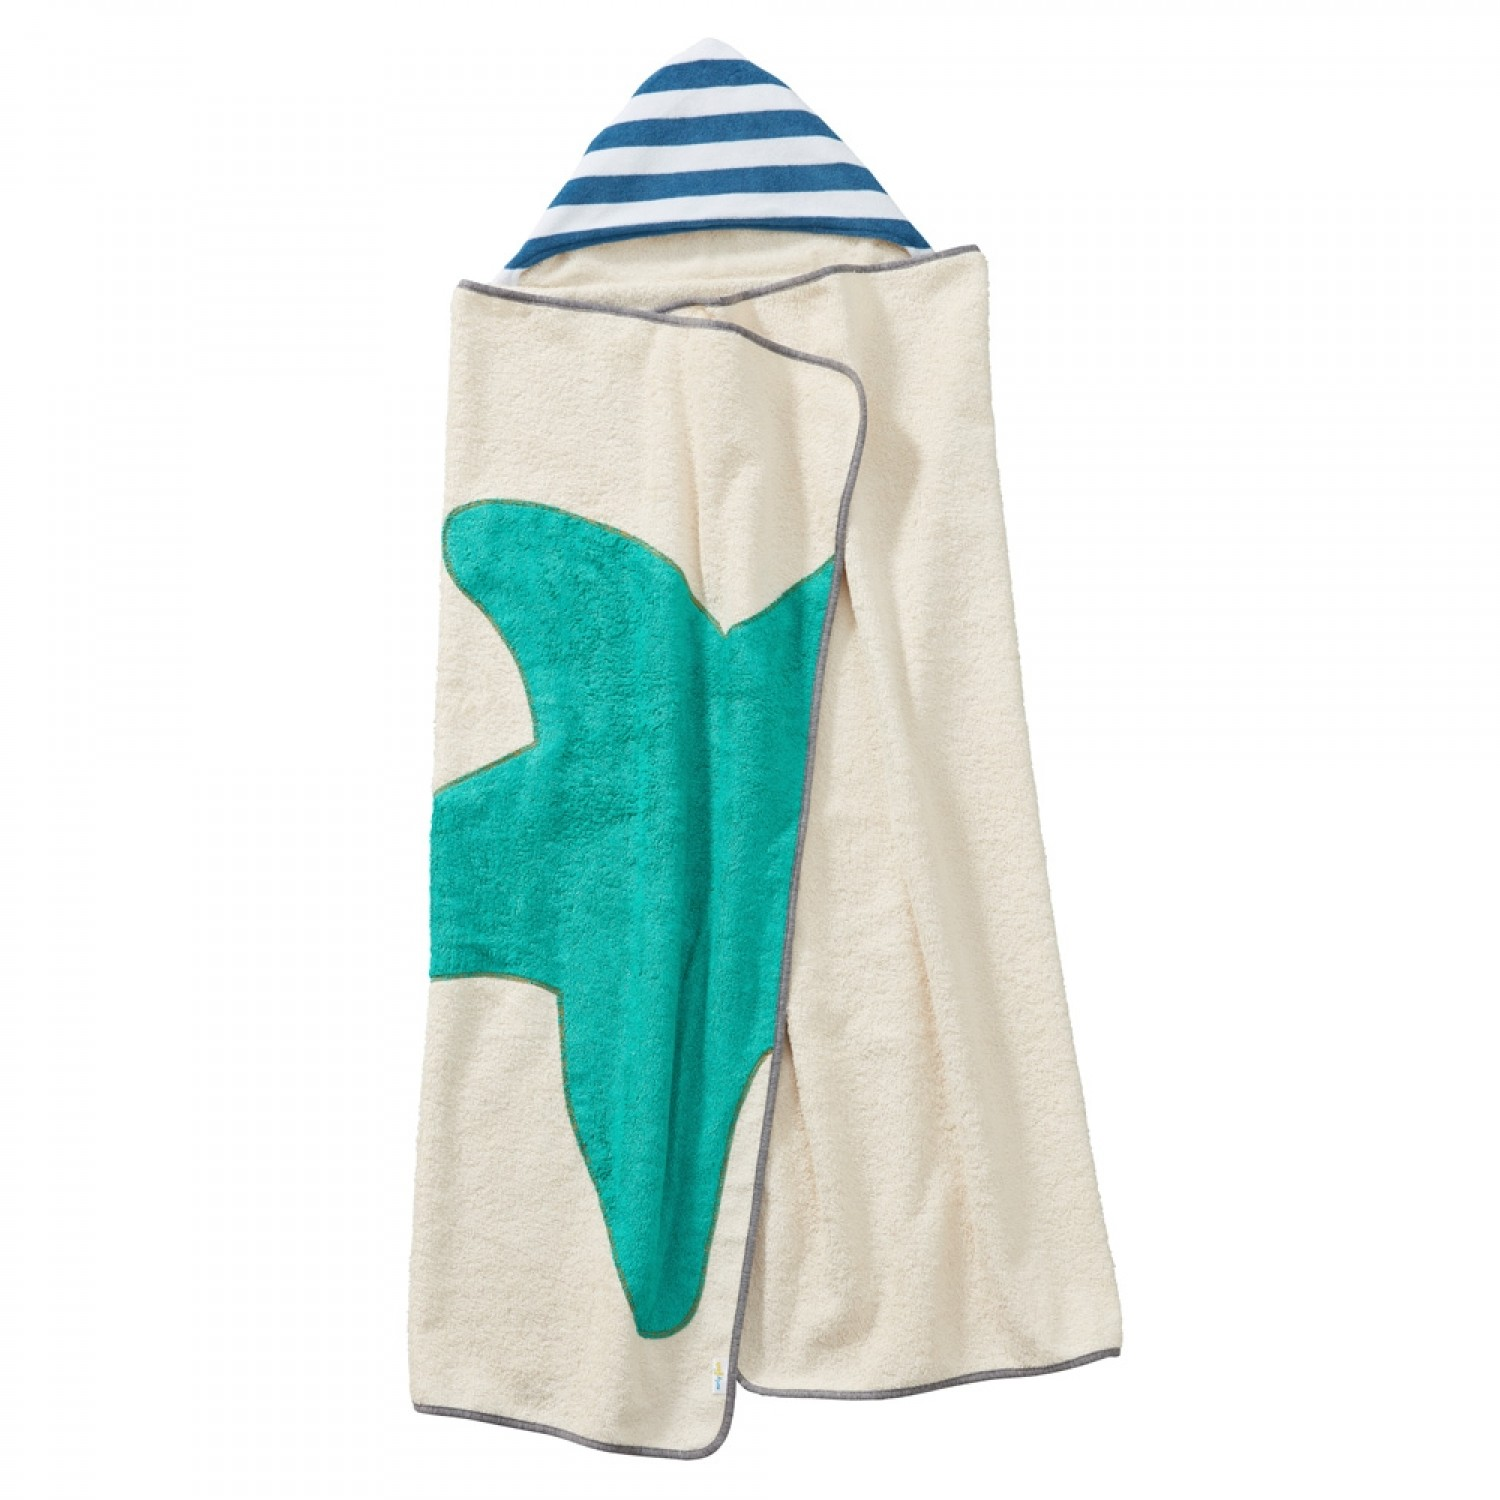 Badehandtuch Xxl Hooded Bath Towel With Starfish